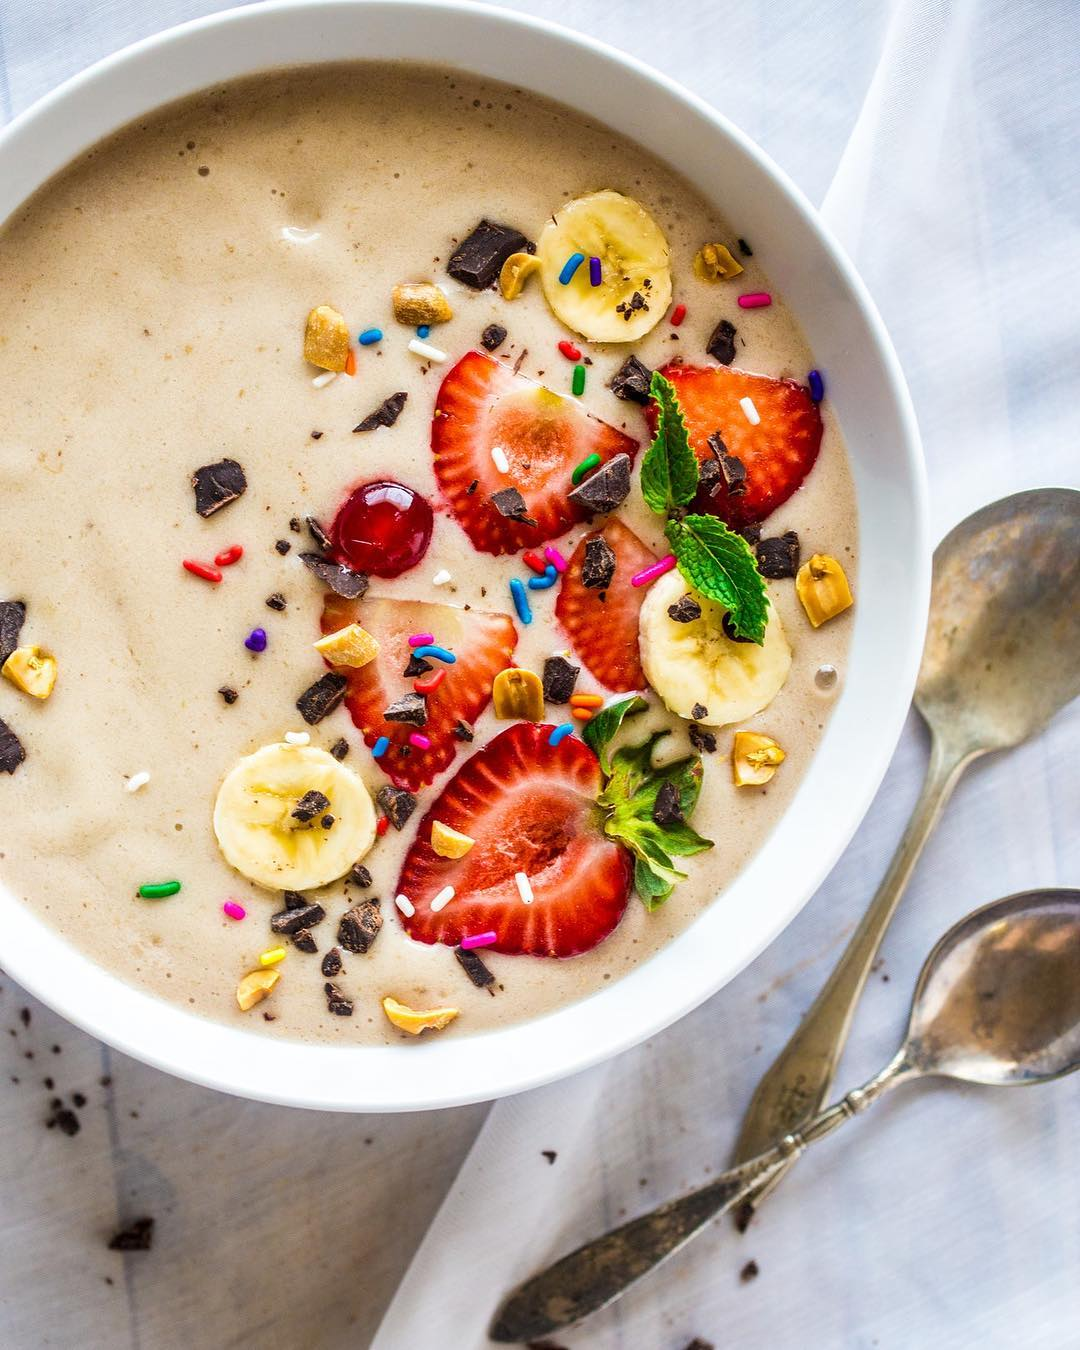 Foodhall,  BetterForYou, Healthy, SmoothieBowl, FreshFruits, PowerSnack, Indulgent, TryItNow, Recipe, RecipesByFoodhall, ForTheLoveOfFood, FoodhallIndia